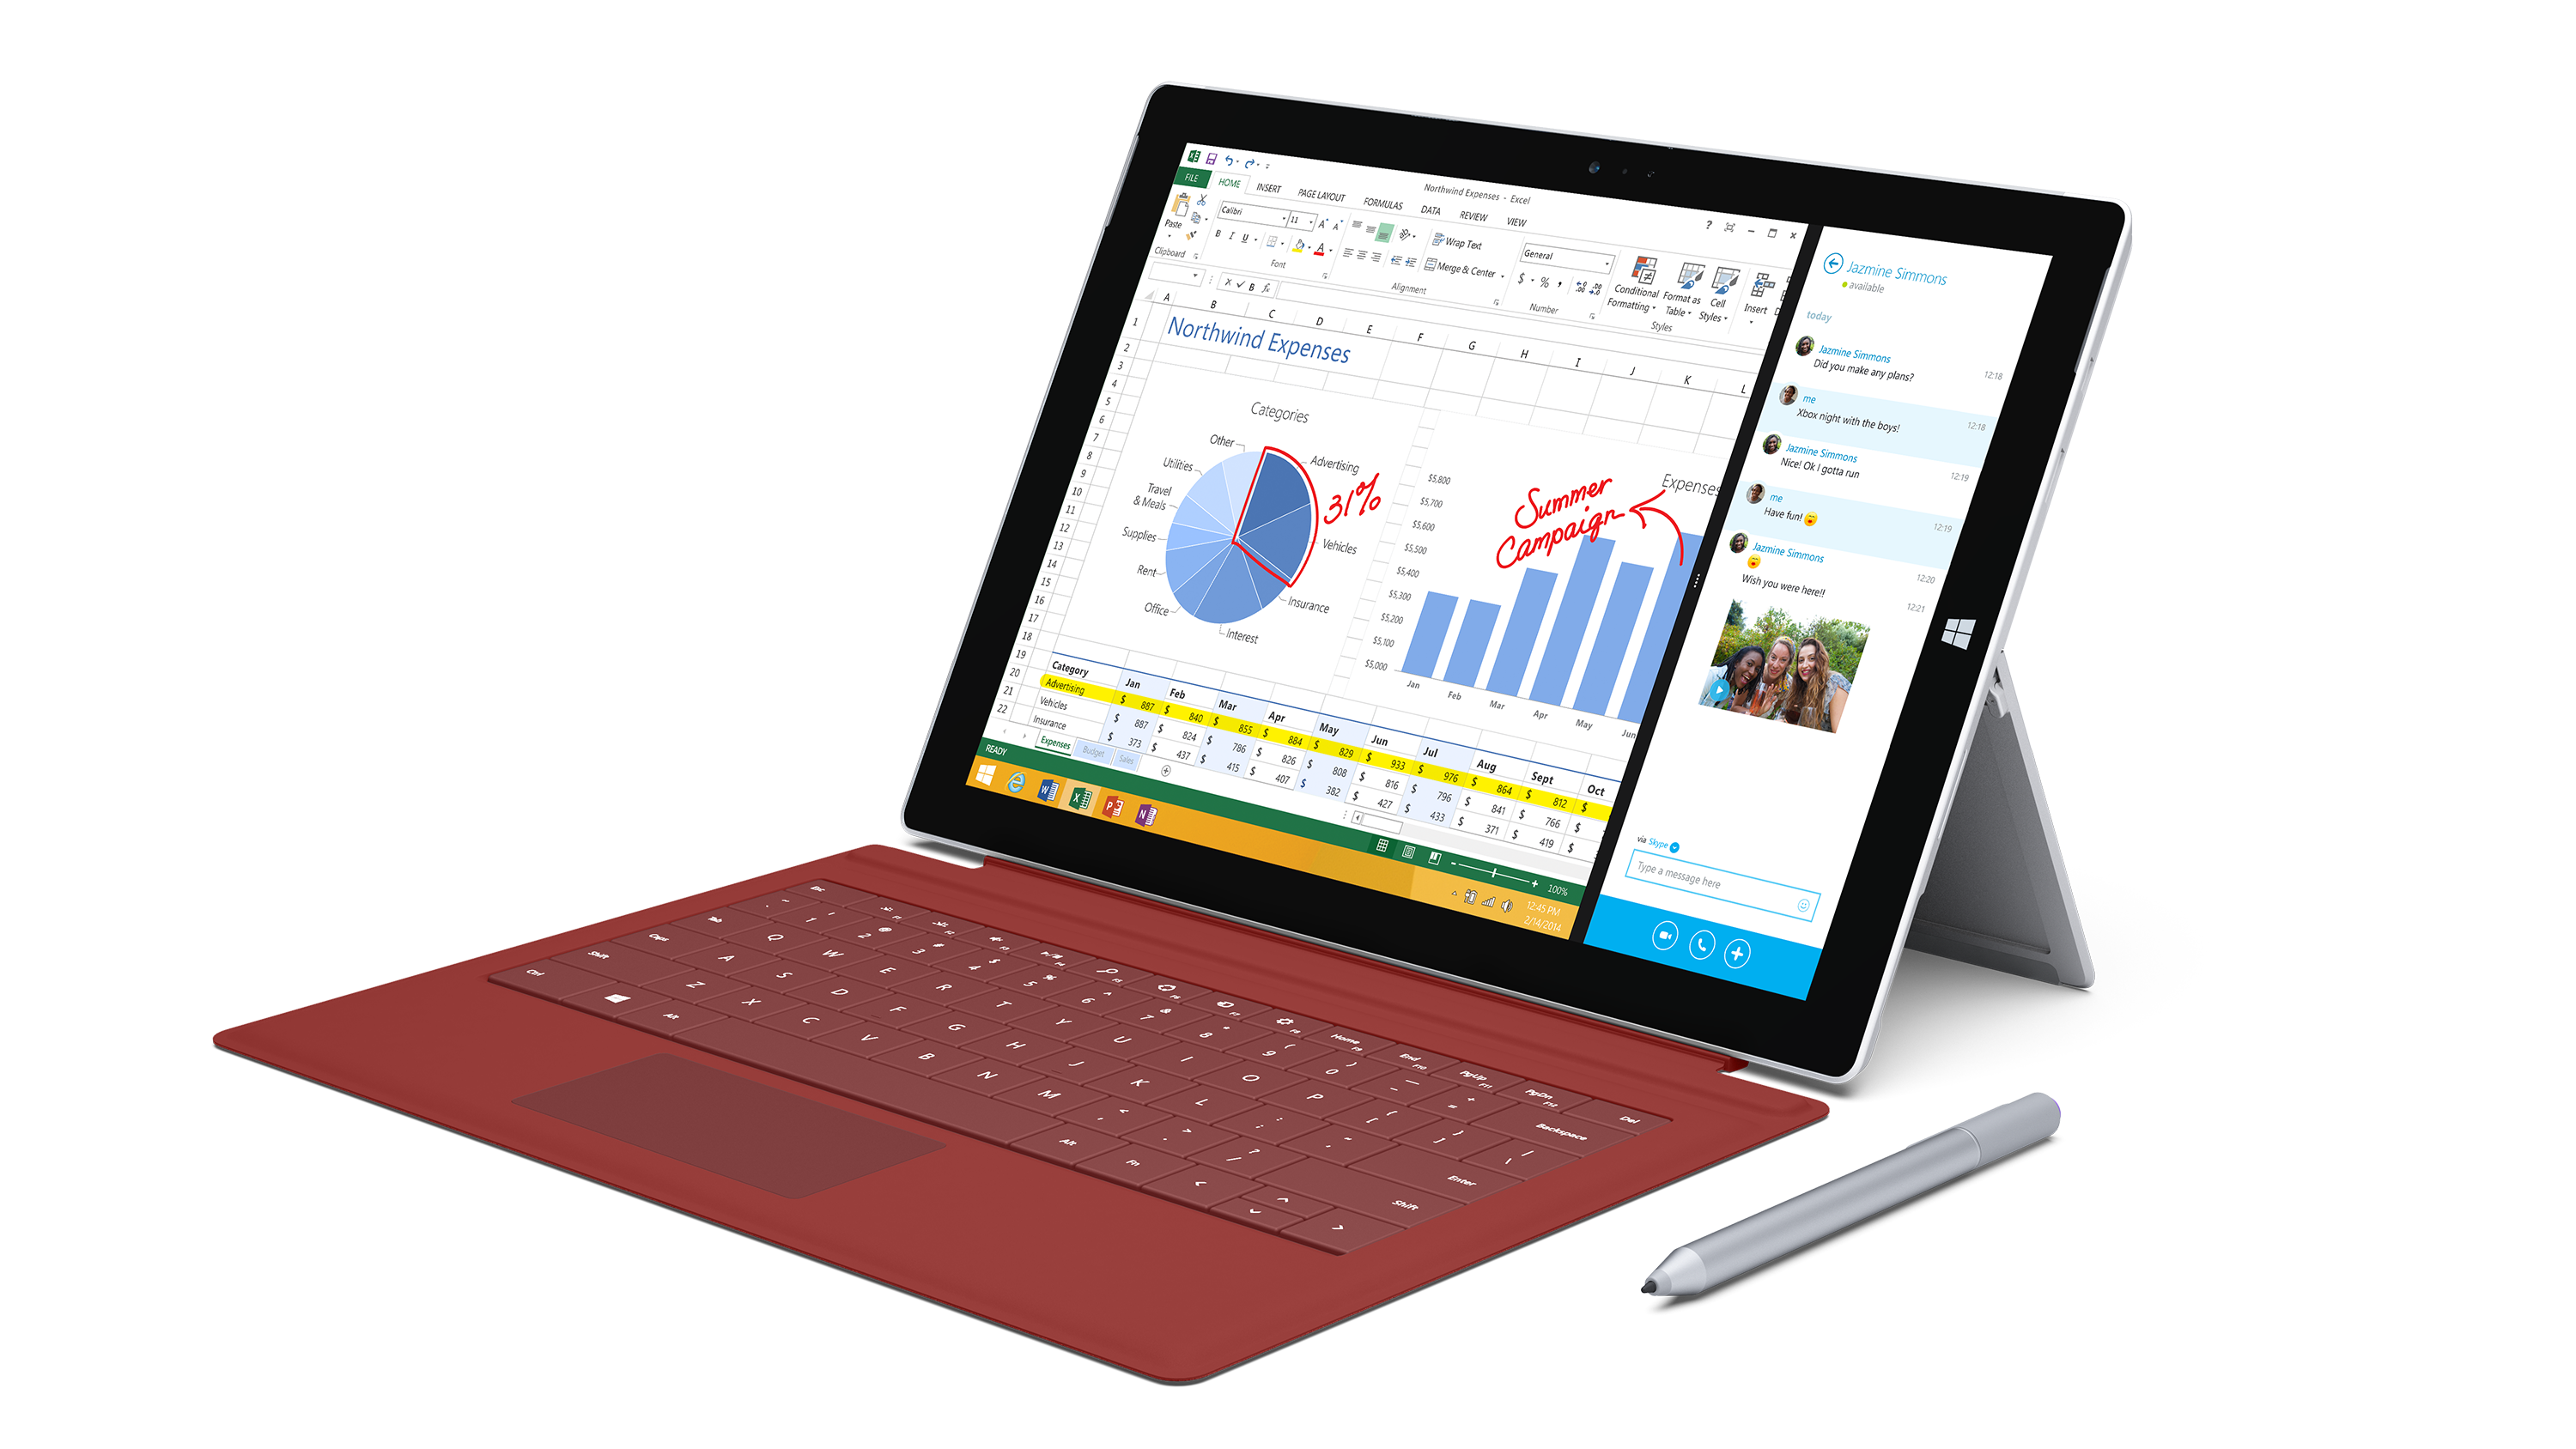 Drawing tab surface 3. Pro arrives in nine